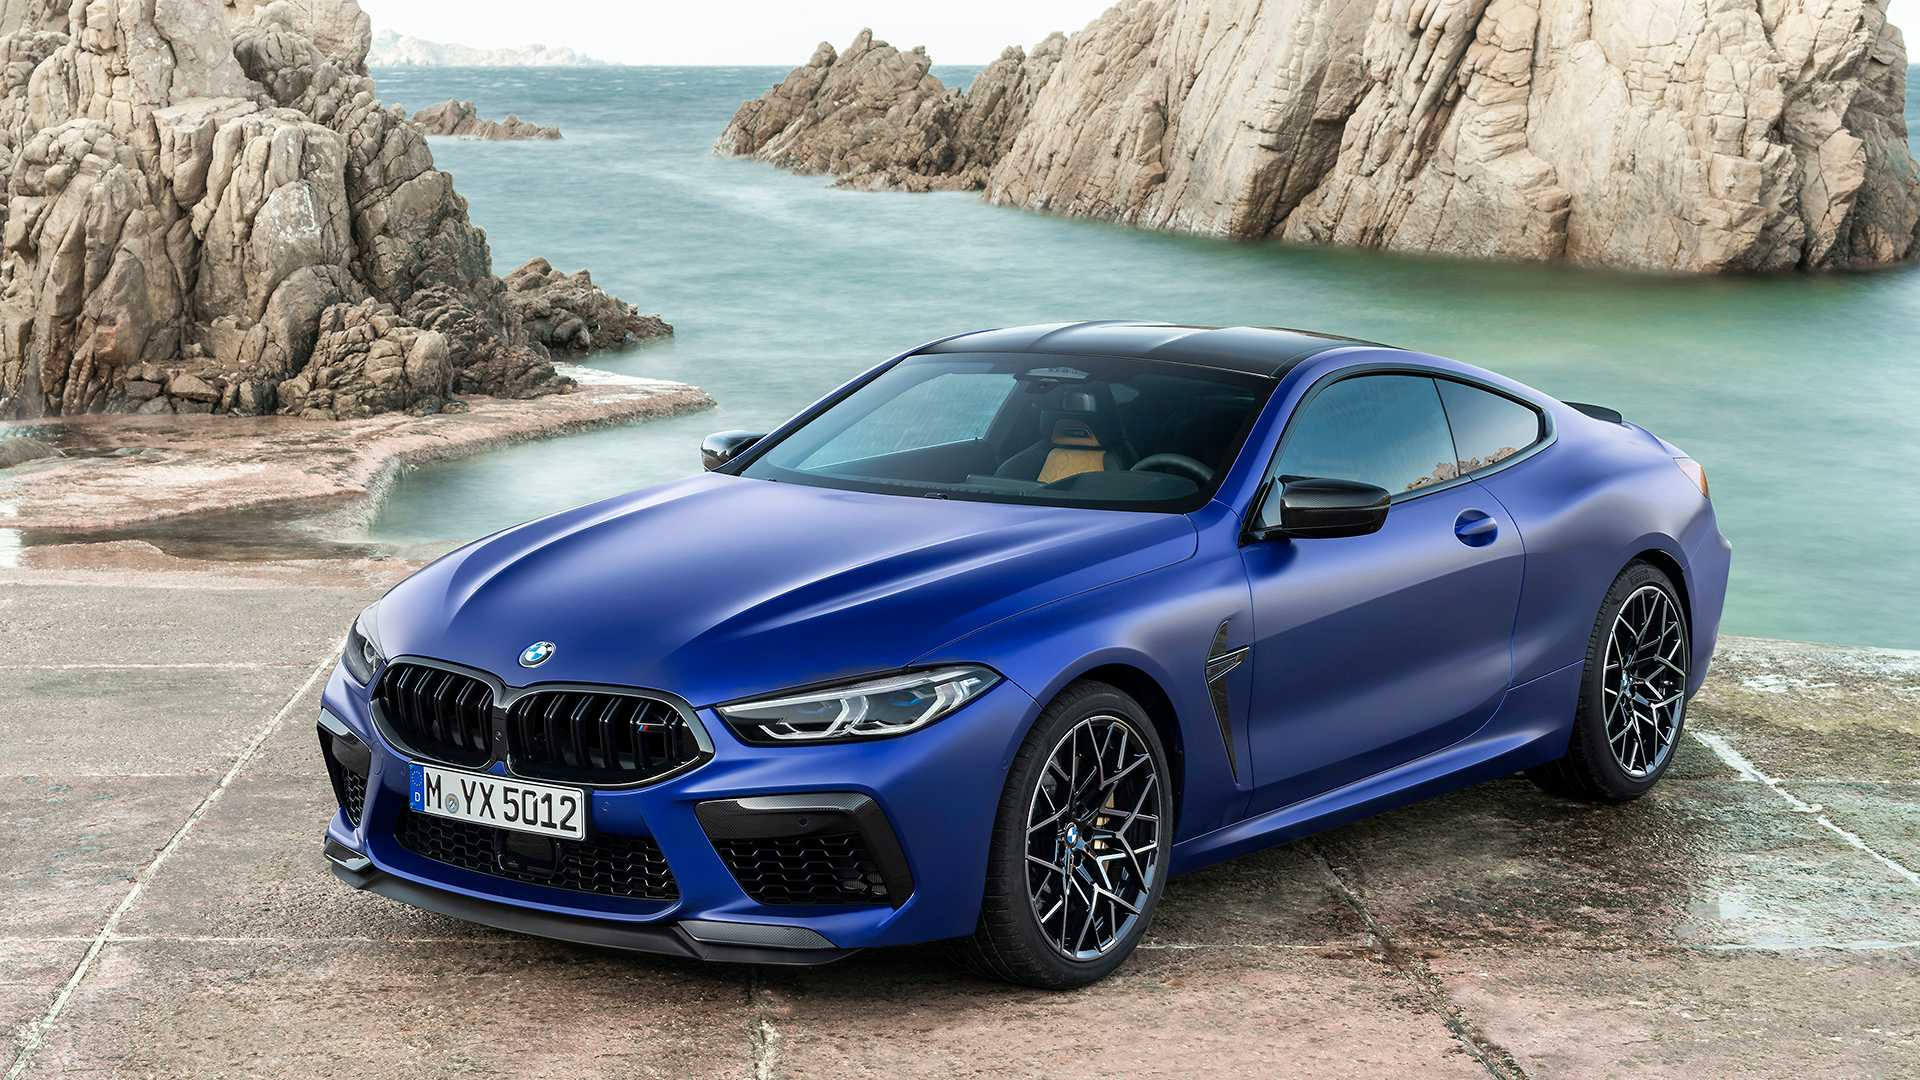 2019-bmw-m8-coupe-26